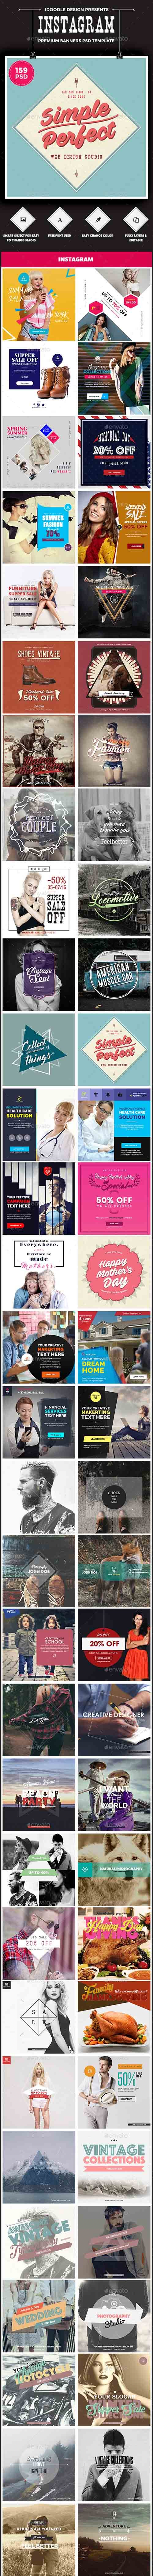 GR - Promotion Instagram Banners Ads - 159 PSD Bundle 13686890